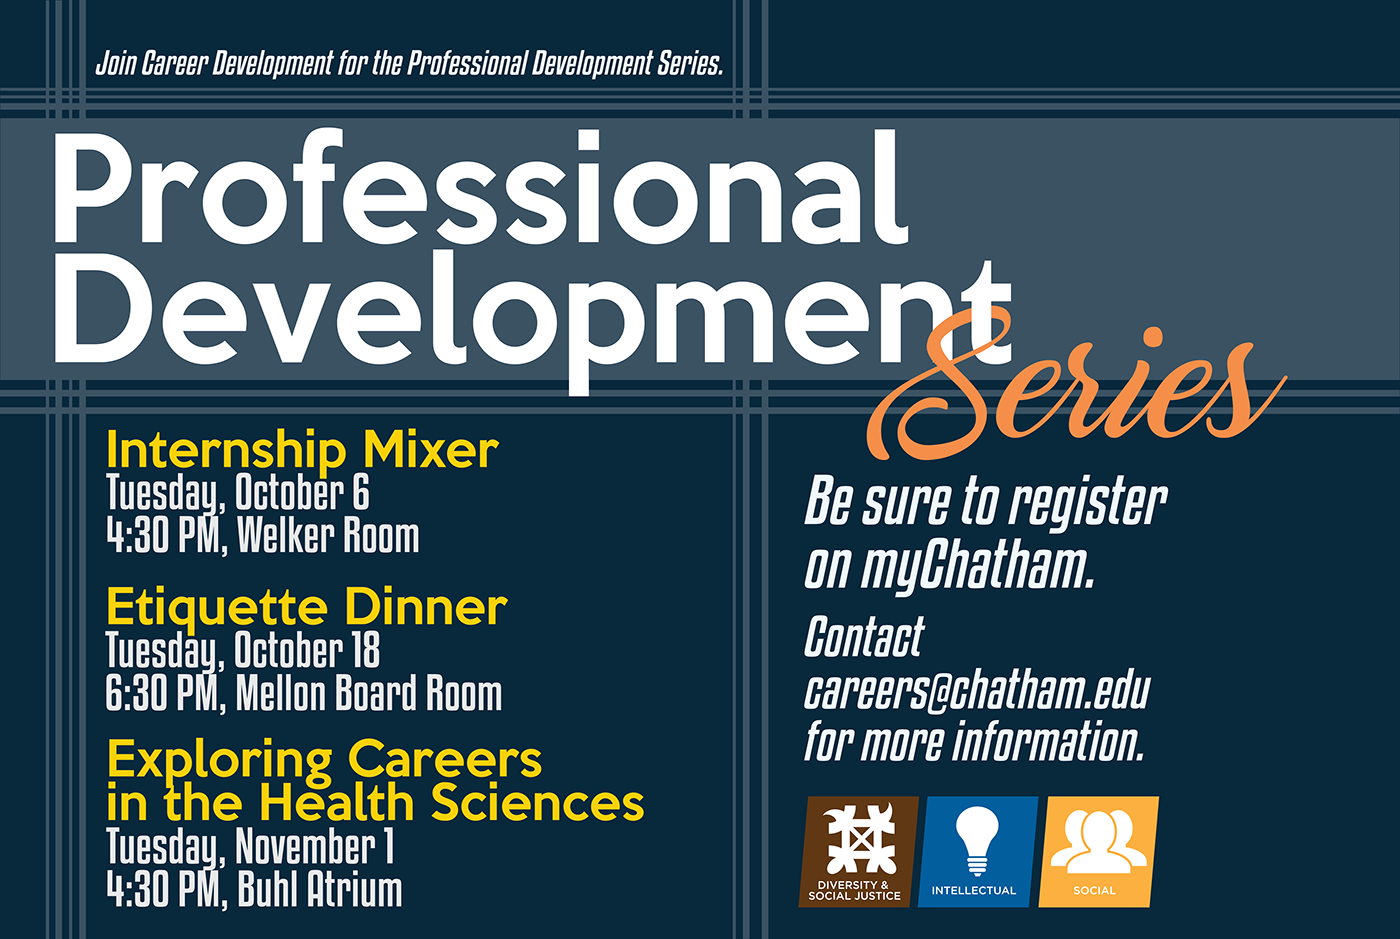 Professional Development Series Materials on Behance